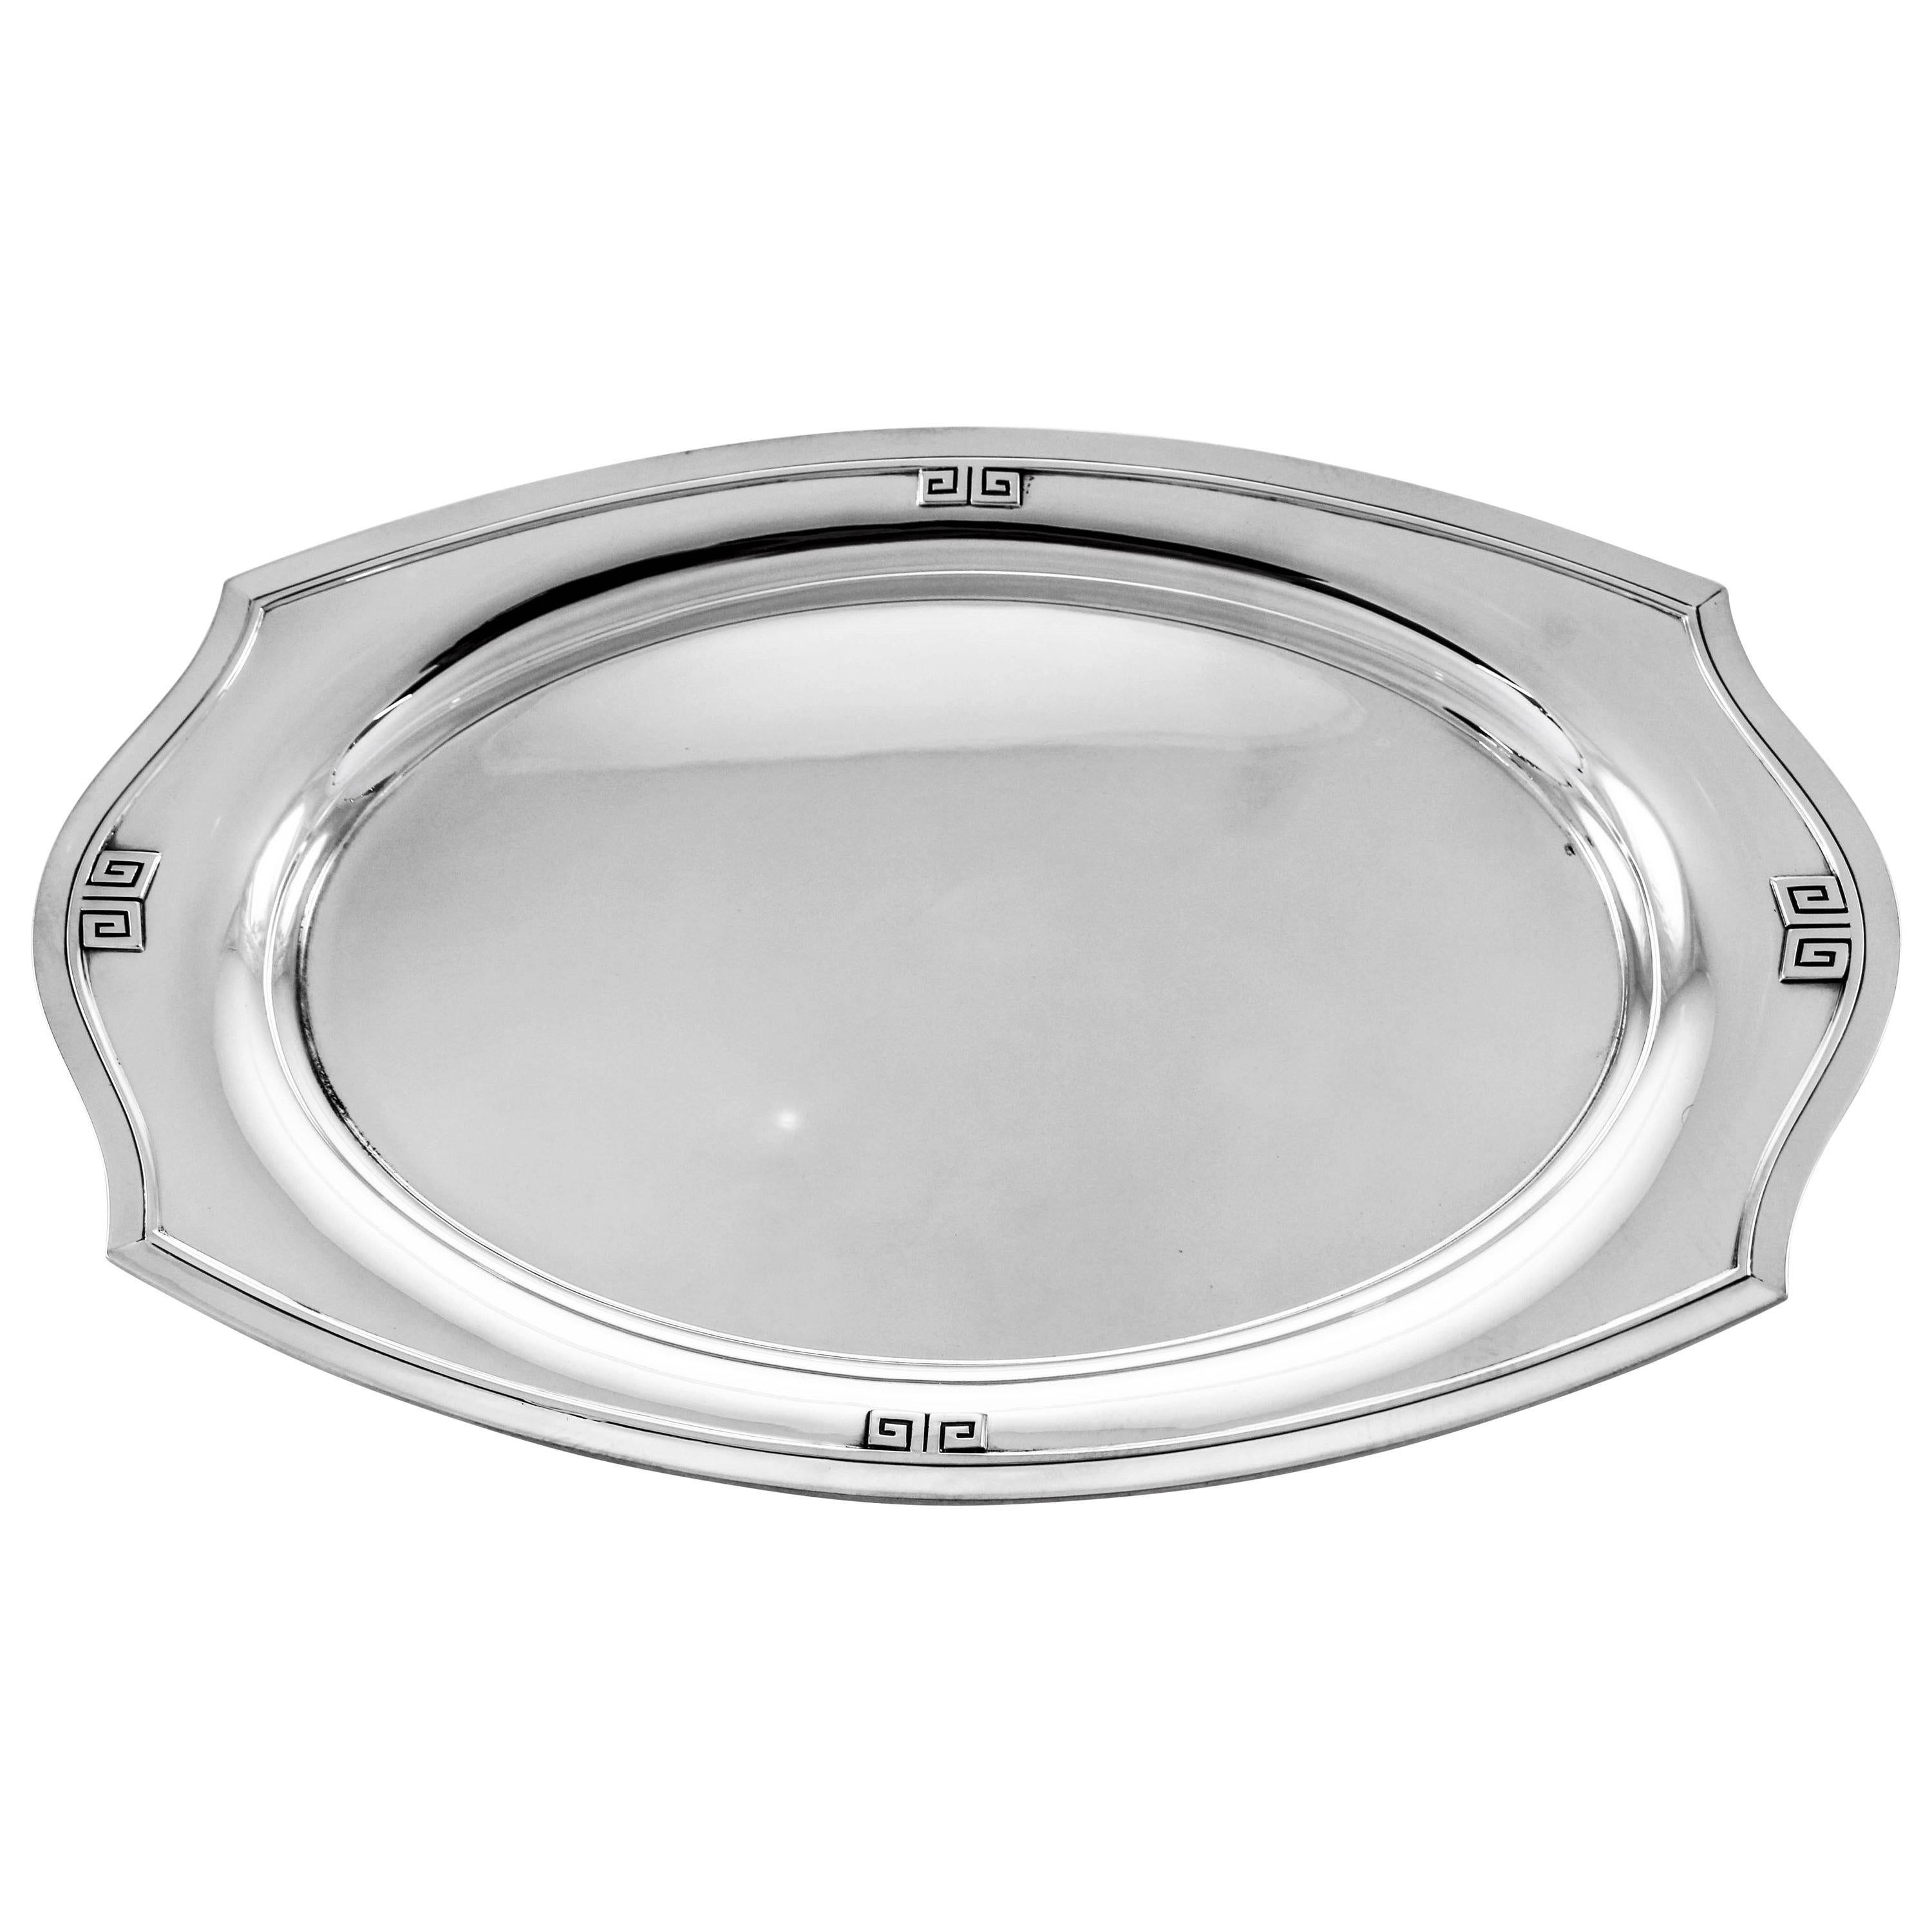 Etruscan Sterling Dish